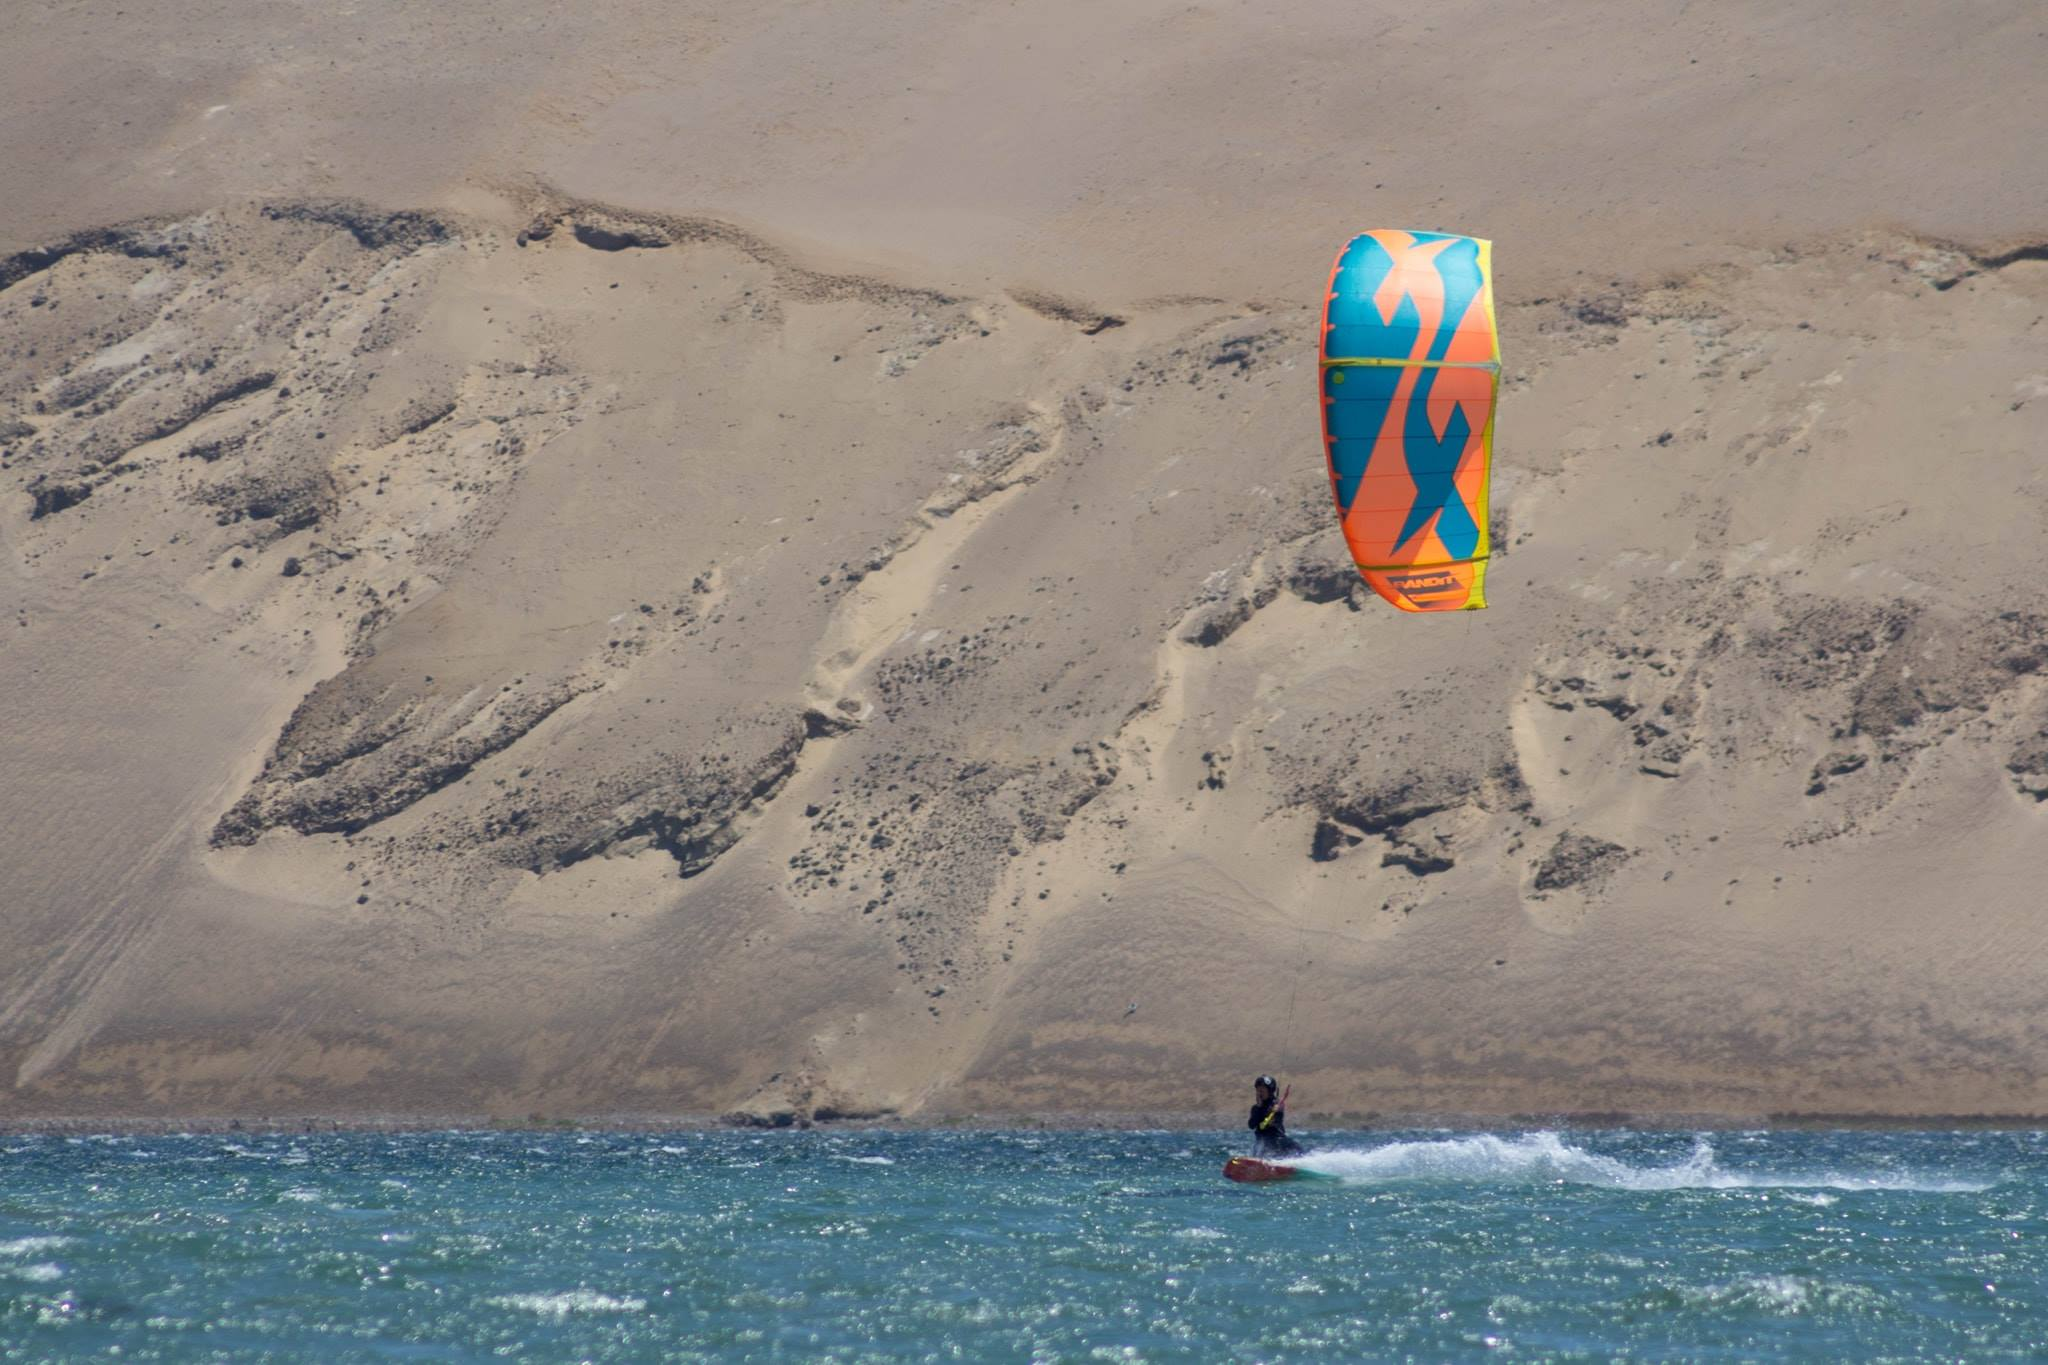 Peru Kite  - Paracas - Lagunaa Grande, Experience the south